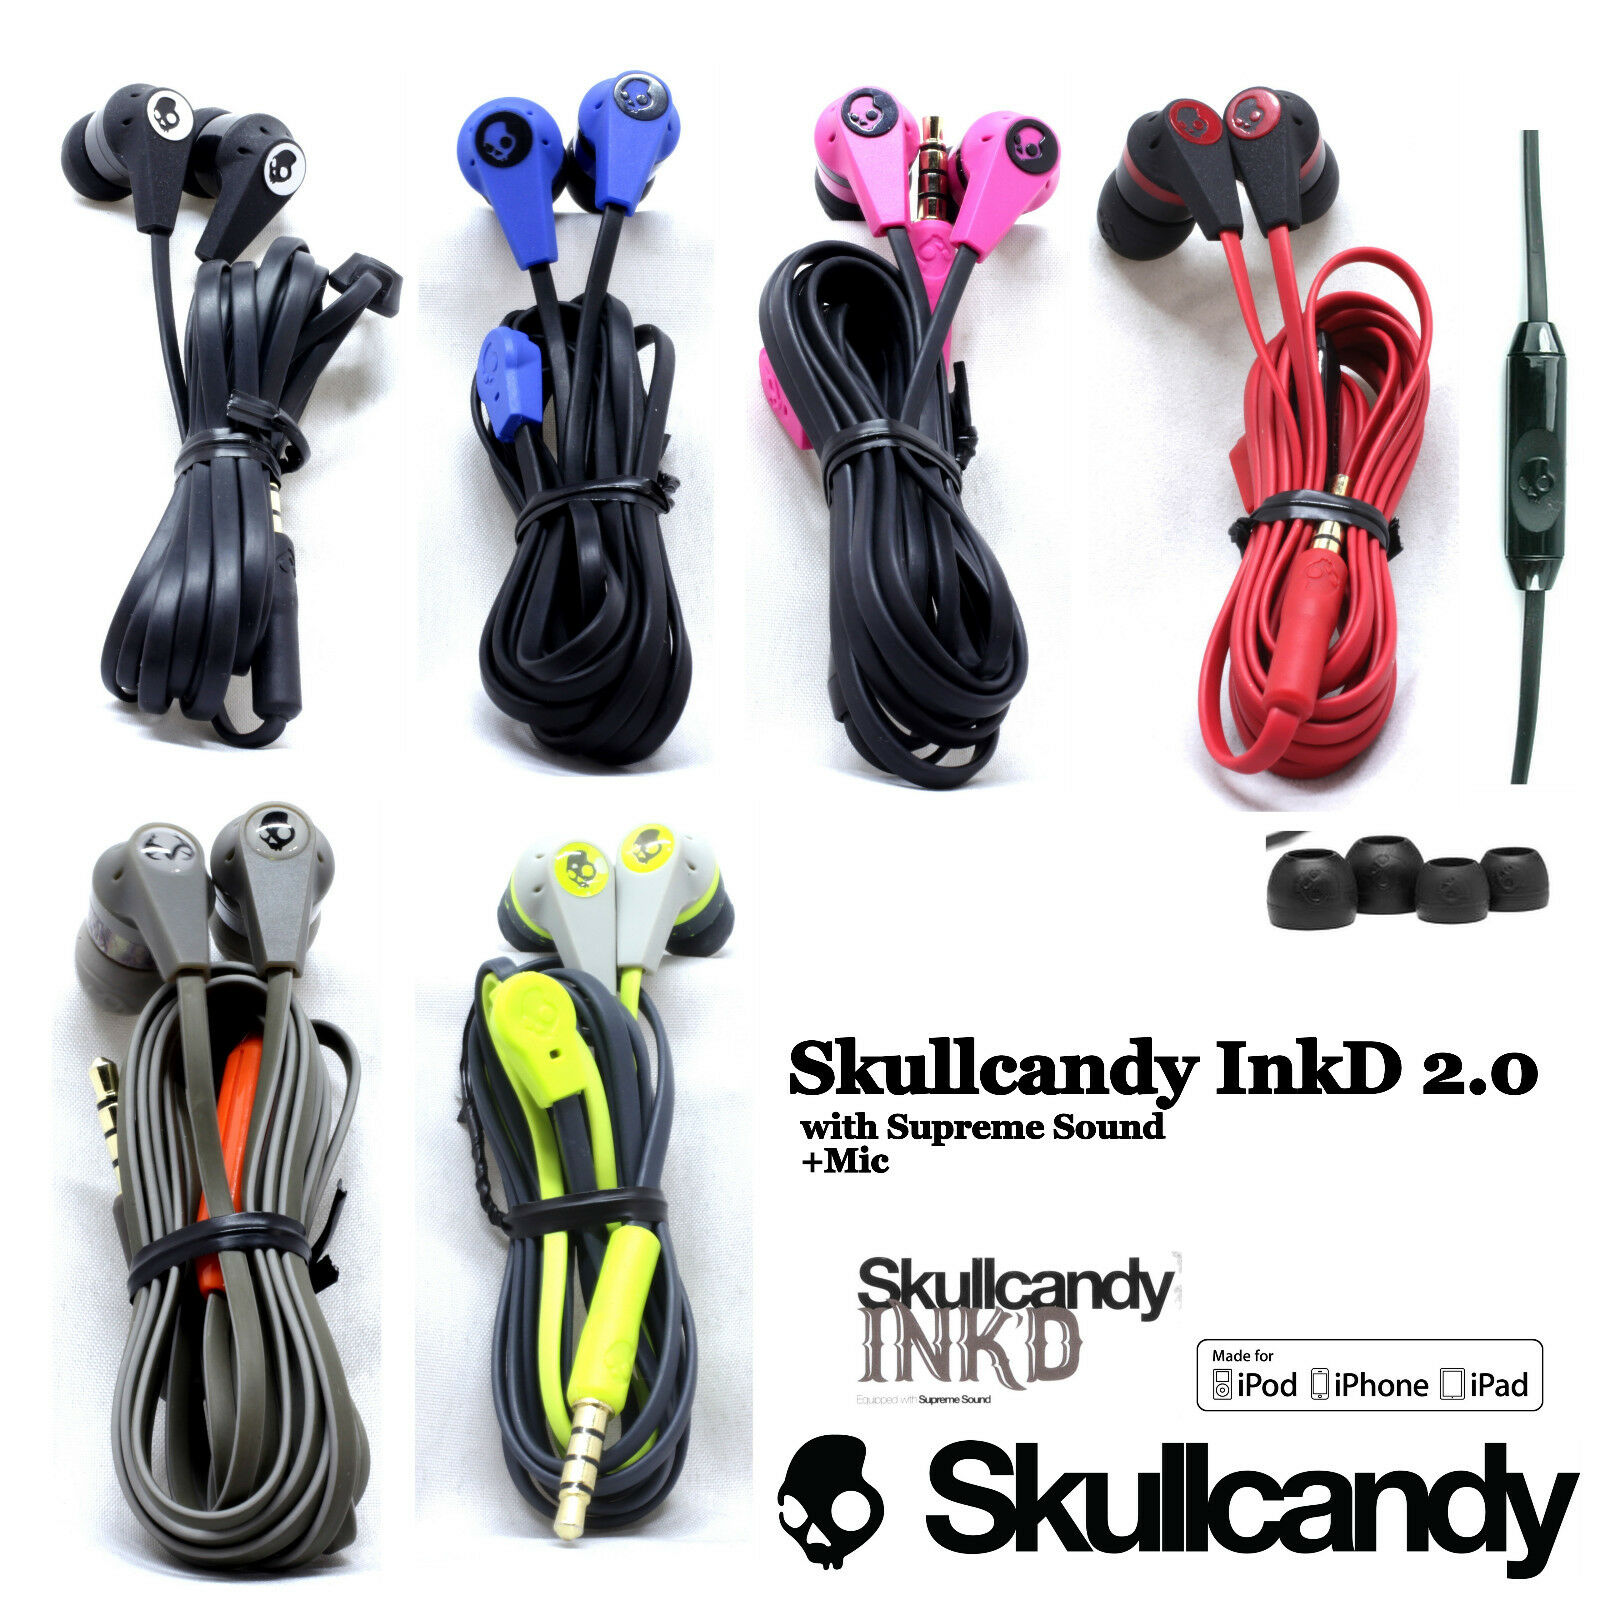 OEM Skullcandy Ink'd 2.0 Earbuds Headphone Wired W/Mic Remote Black Red Blue 1